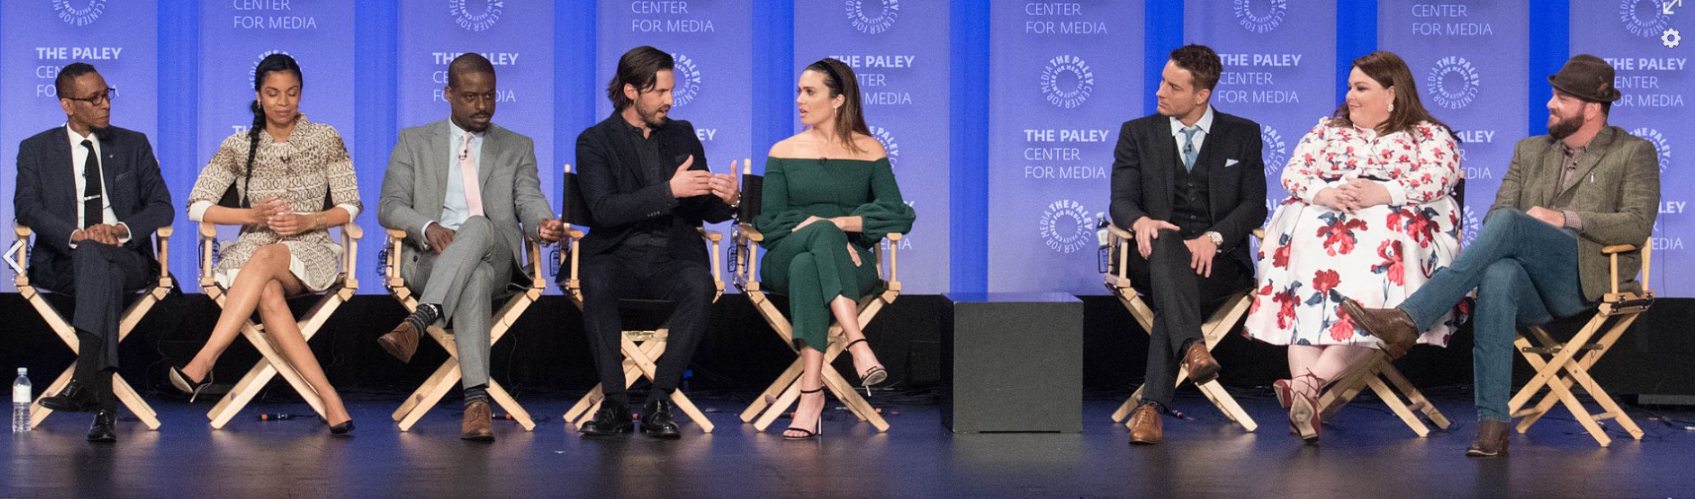 As part of the This Is Us cast, he went on to win a Screen Actors Guild Award for Outstanding Performance by an Ensemble in a Drama Series in 2018 and 2019.